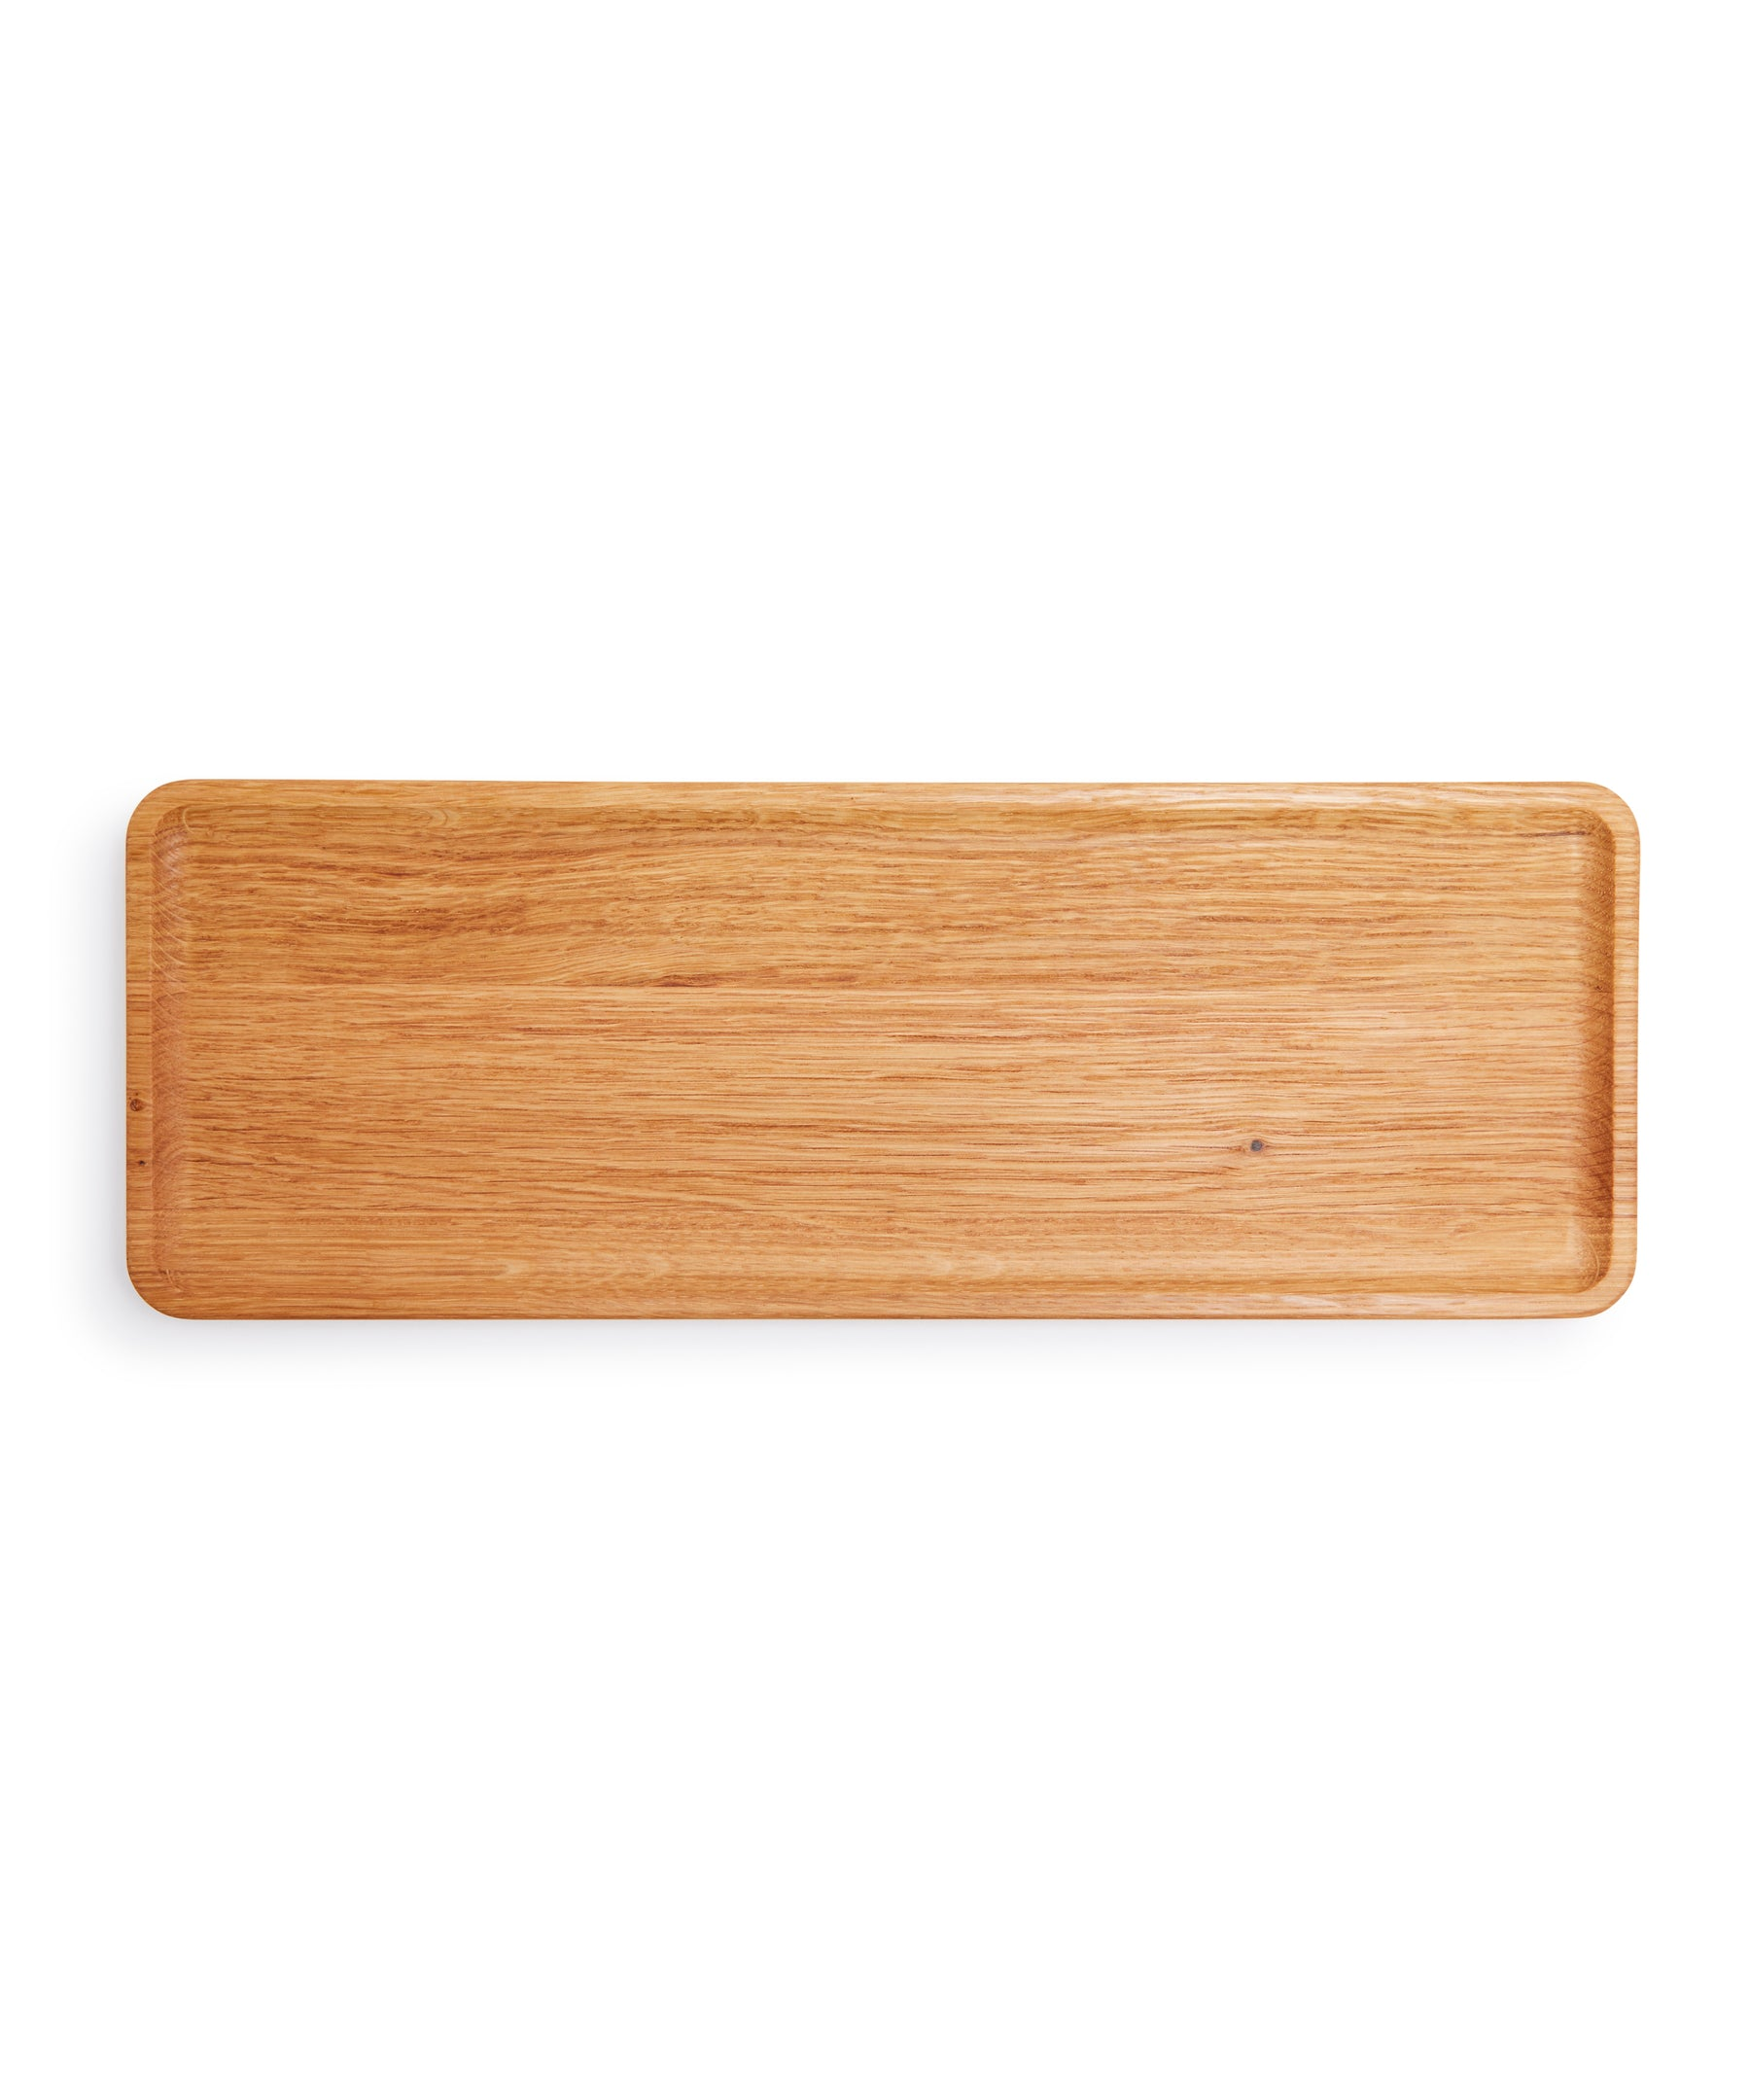 Vitriini Tray by Iittala